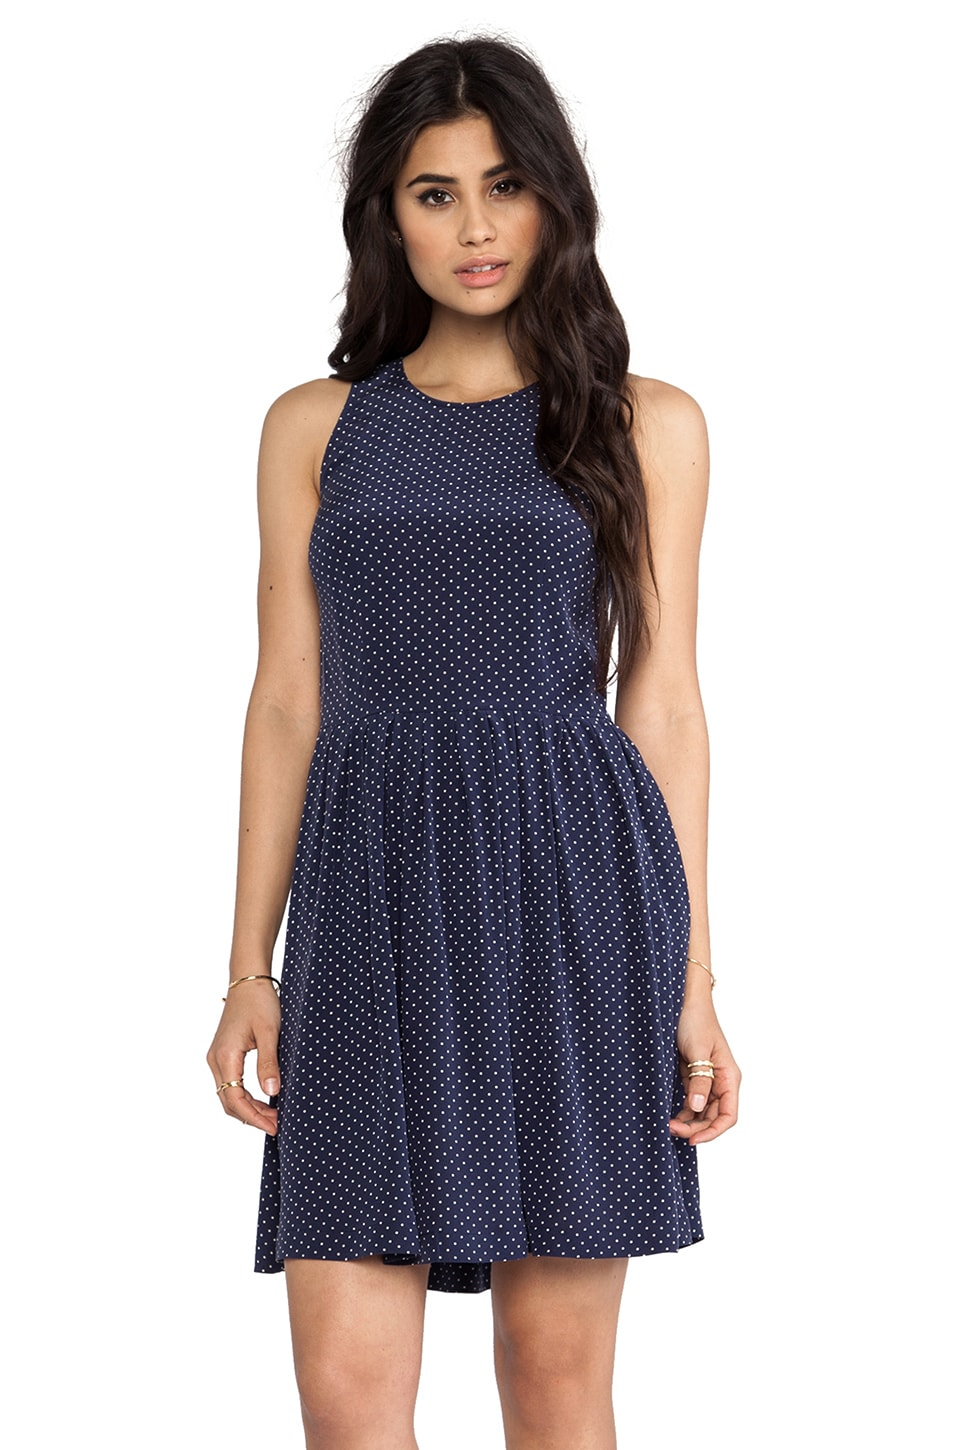 Joie Bernadine Polka Dot Dress in Dark Navy